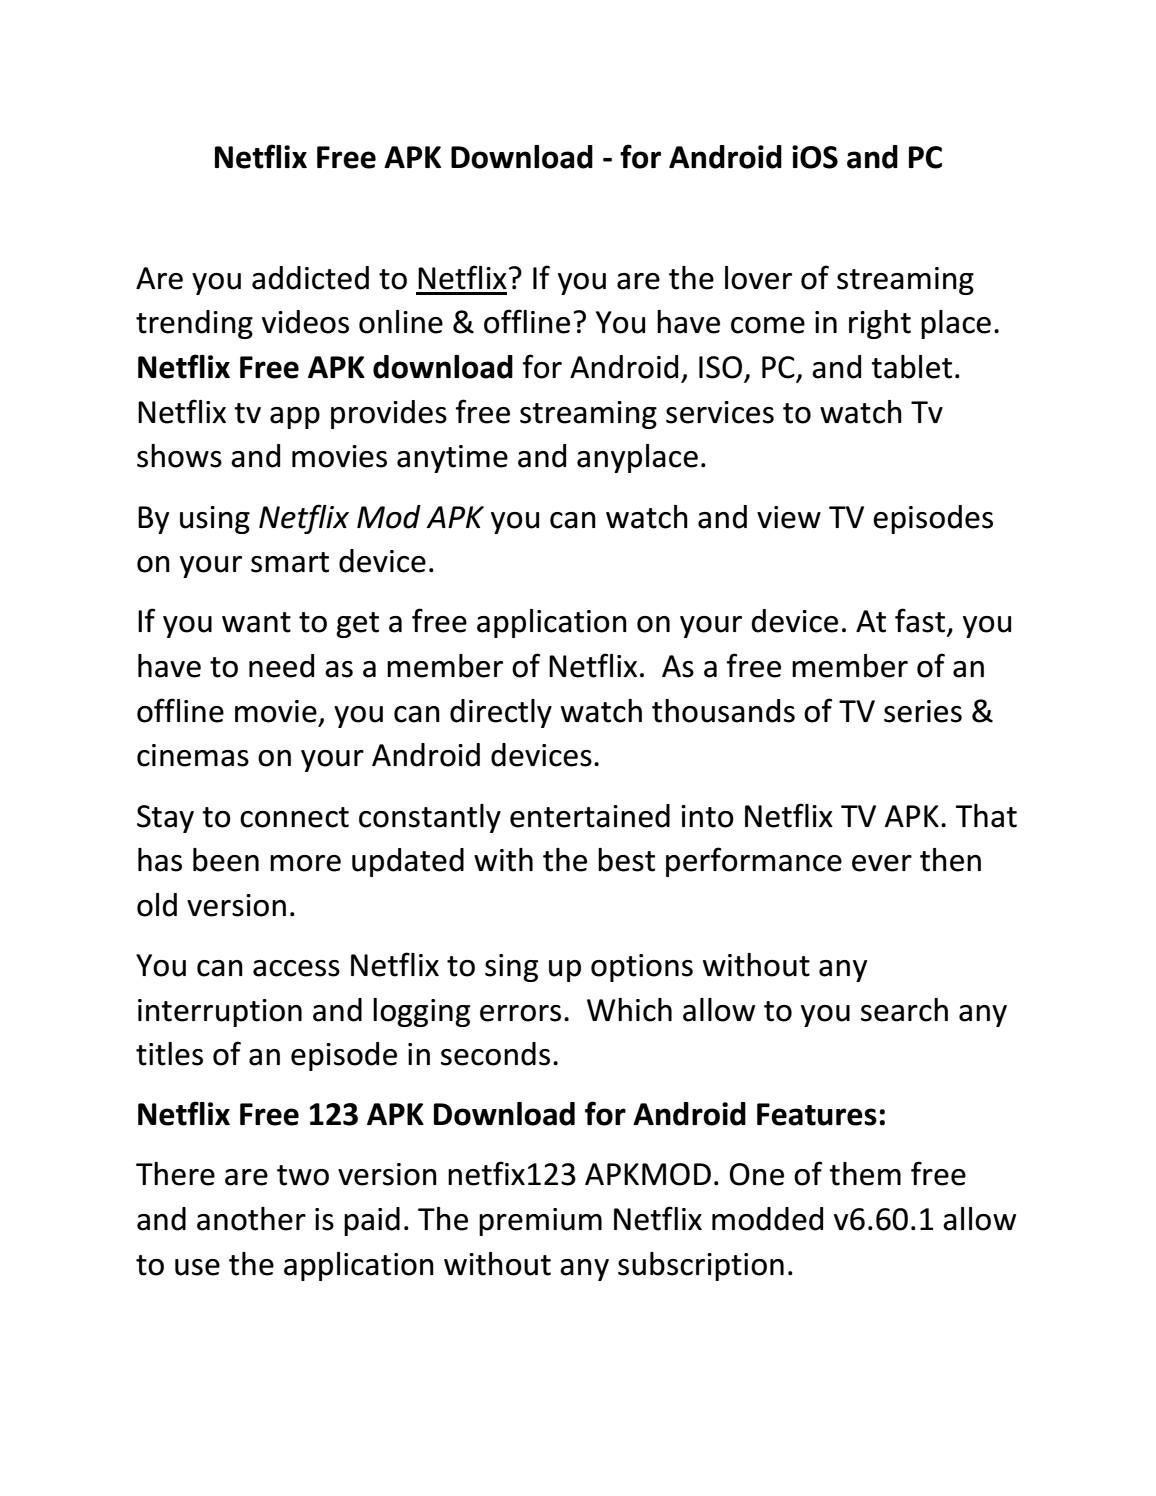 Netflix Free APK Download - for Android iOS and PC by msruthesoto